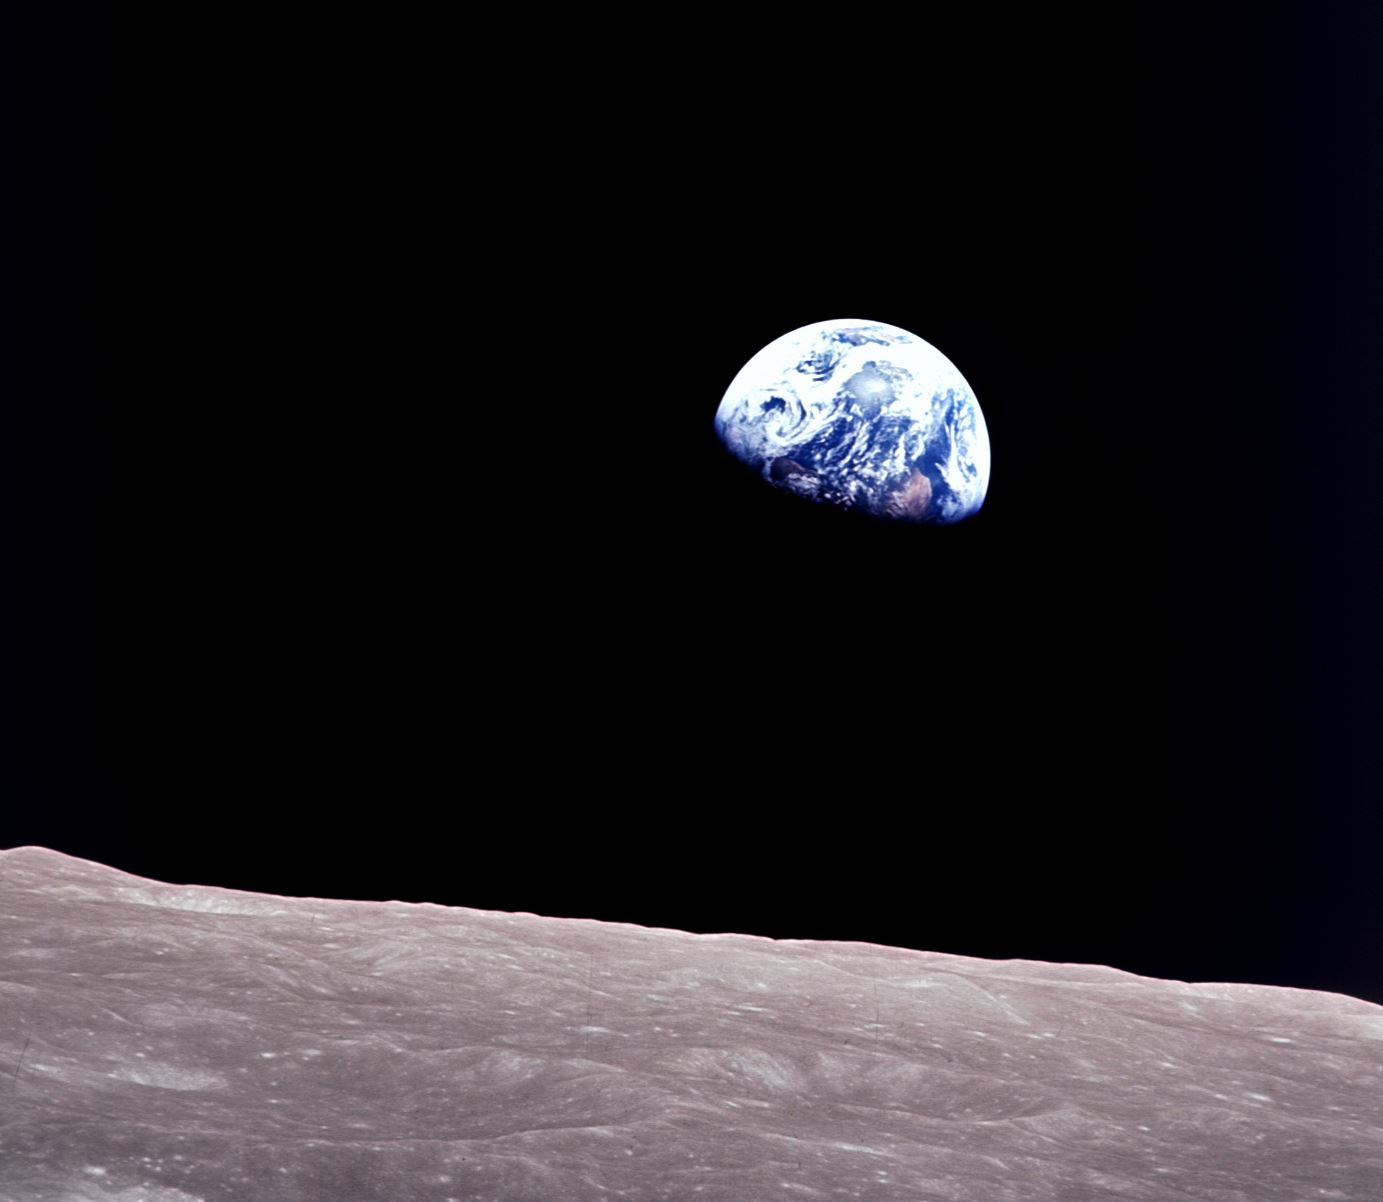 Earthrise: astronauts aboard Apollo 8 captured this spectacular photo of Earth rising above the lunar horizon as they emerged from behind the dark side of the Moon. - Image Credit:  NASA